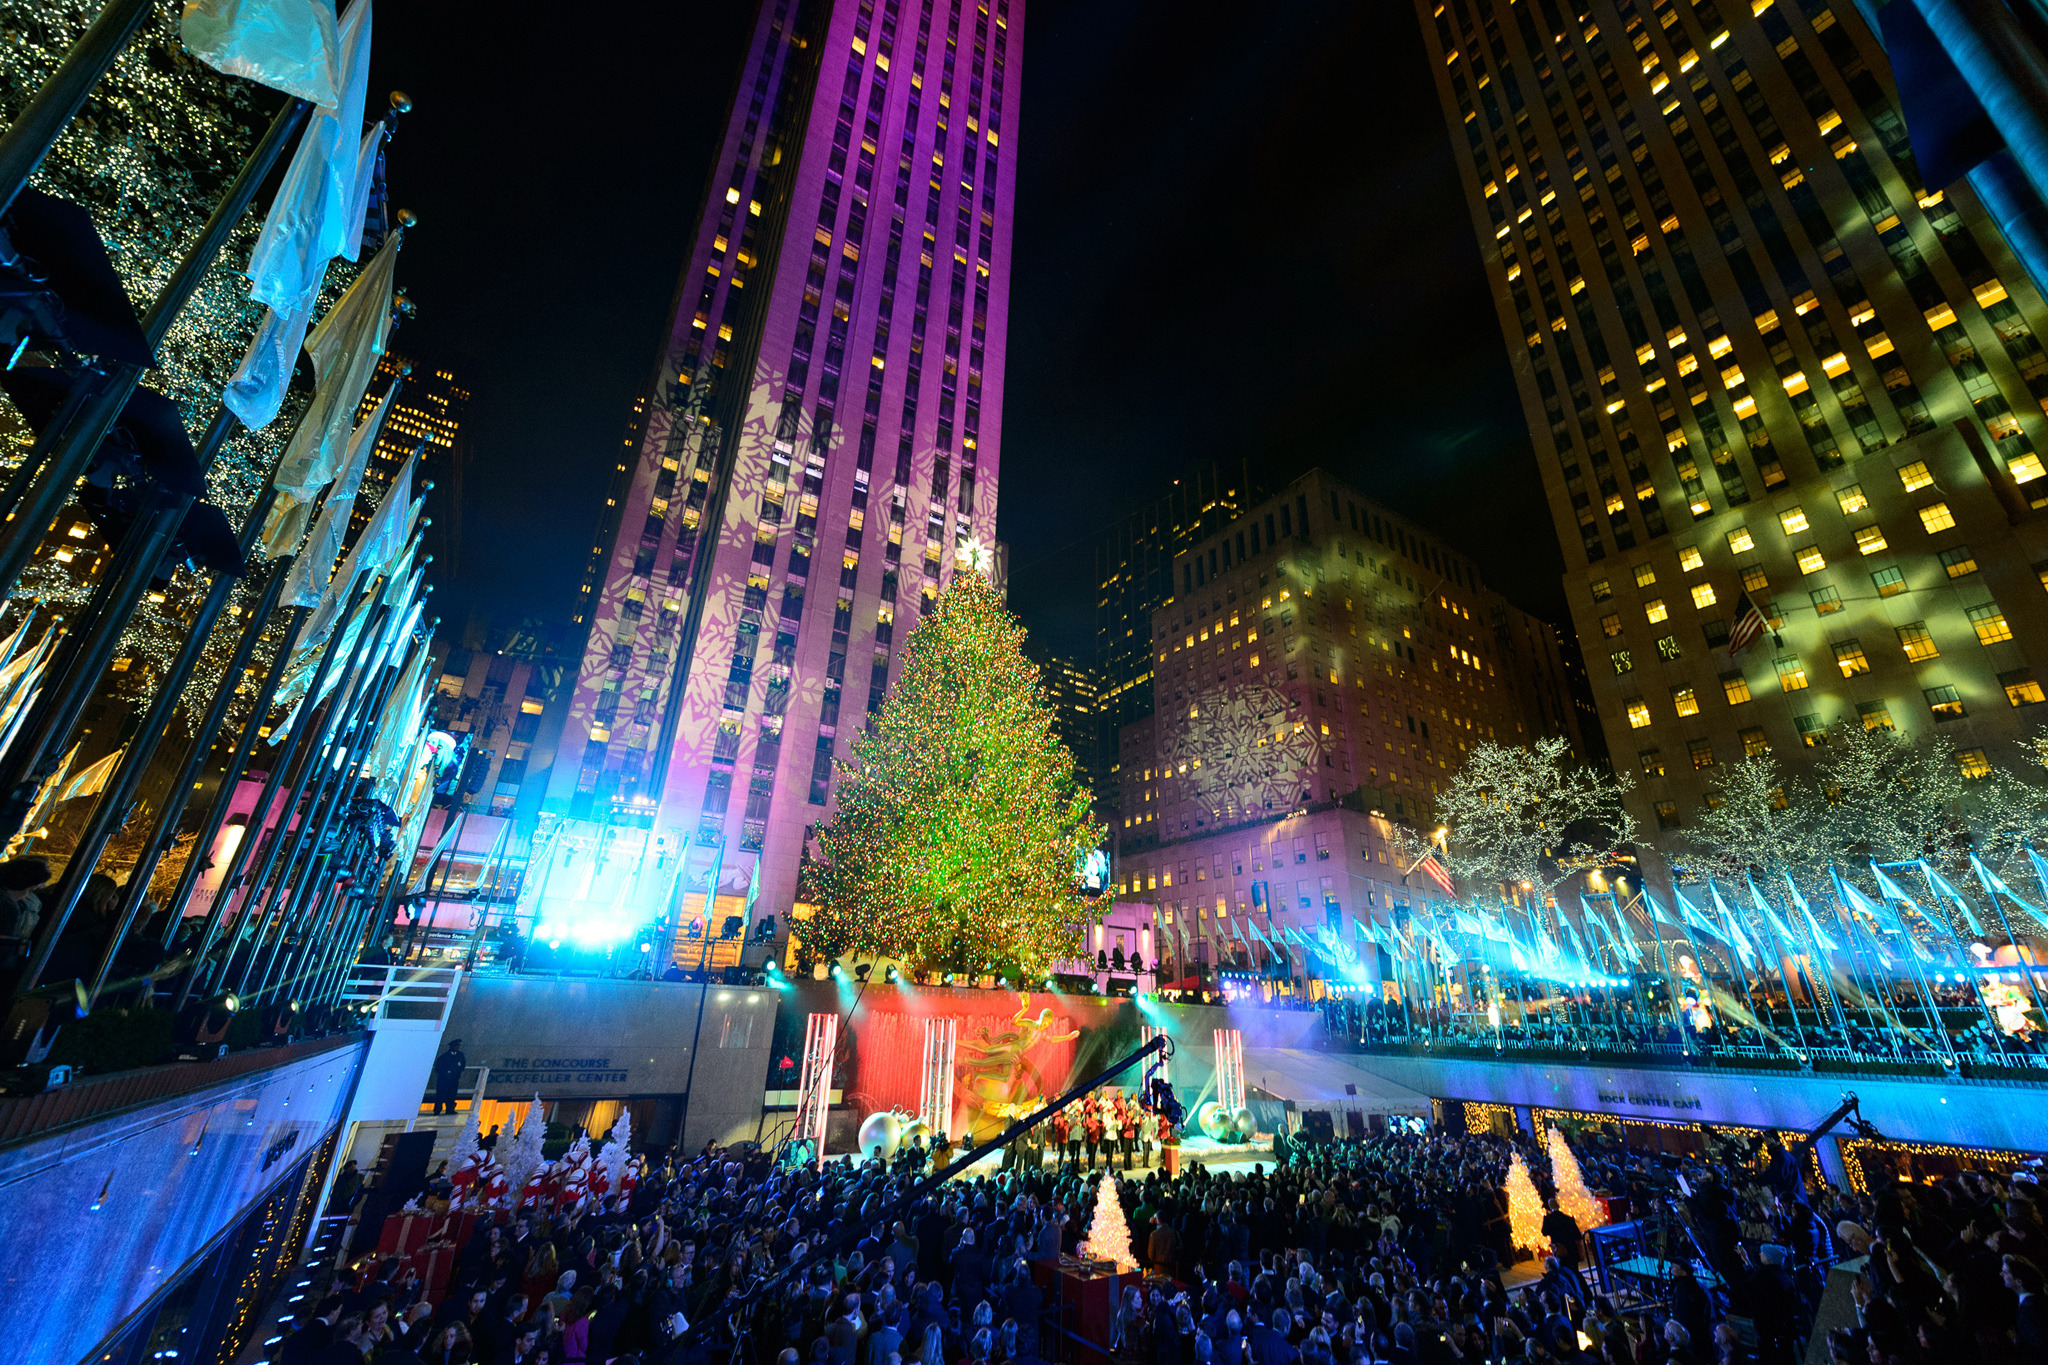 The Rockefeller Center Christmas Tree is now lit up & Rockefeller Center Christmas Tree guide plus what to do nearby